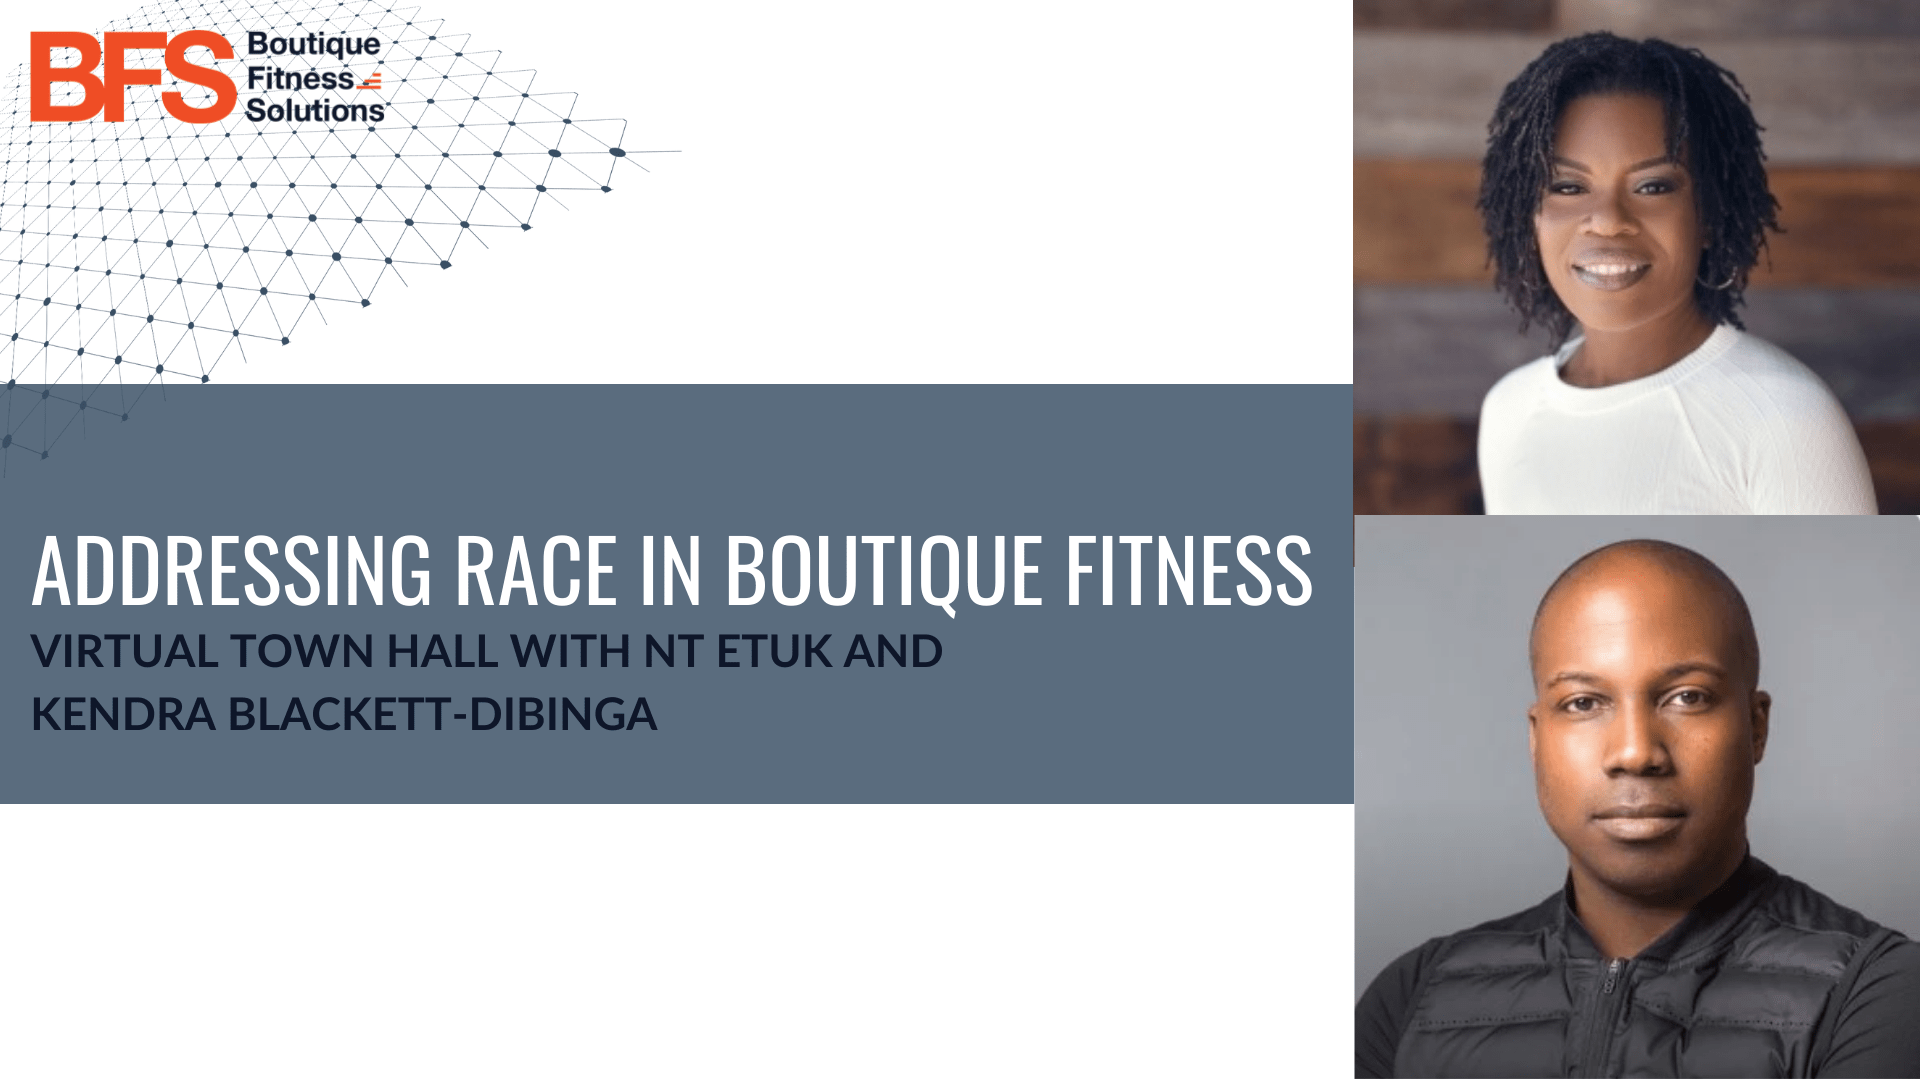 Addressing Race in Boutique Fitness